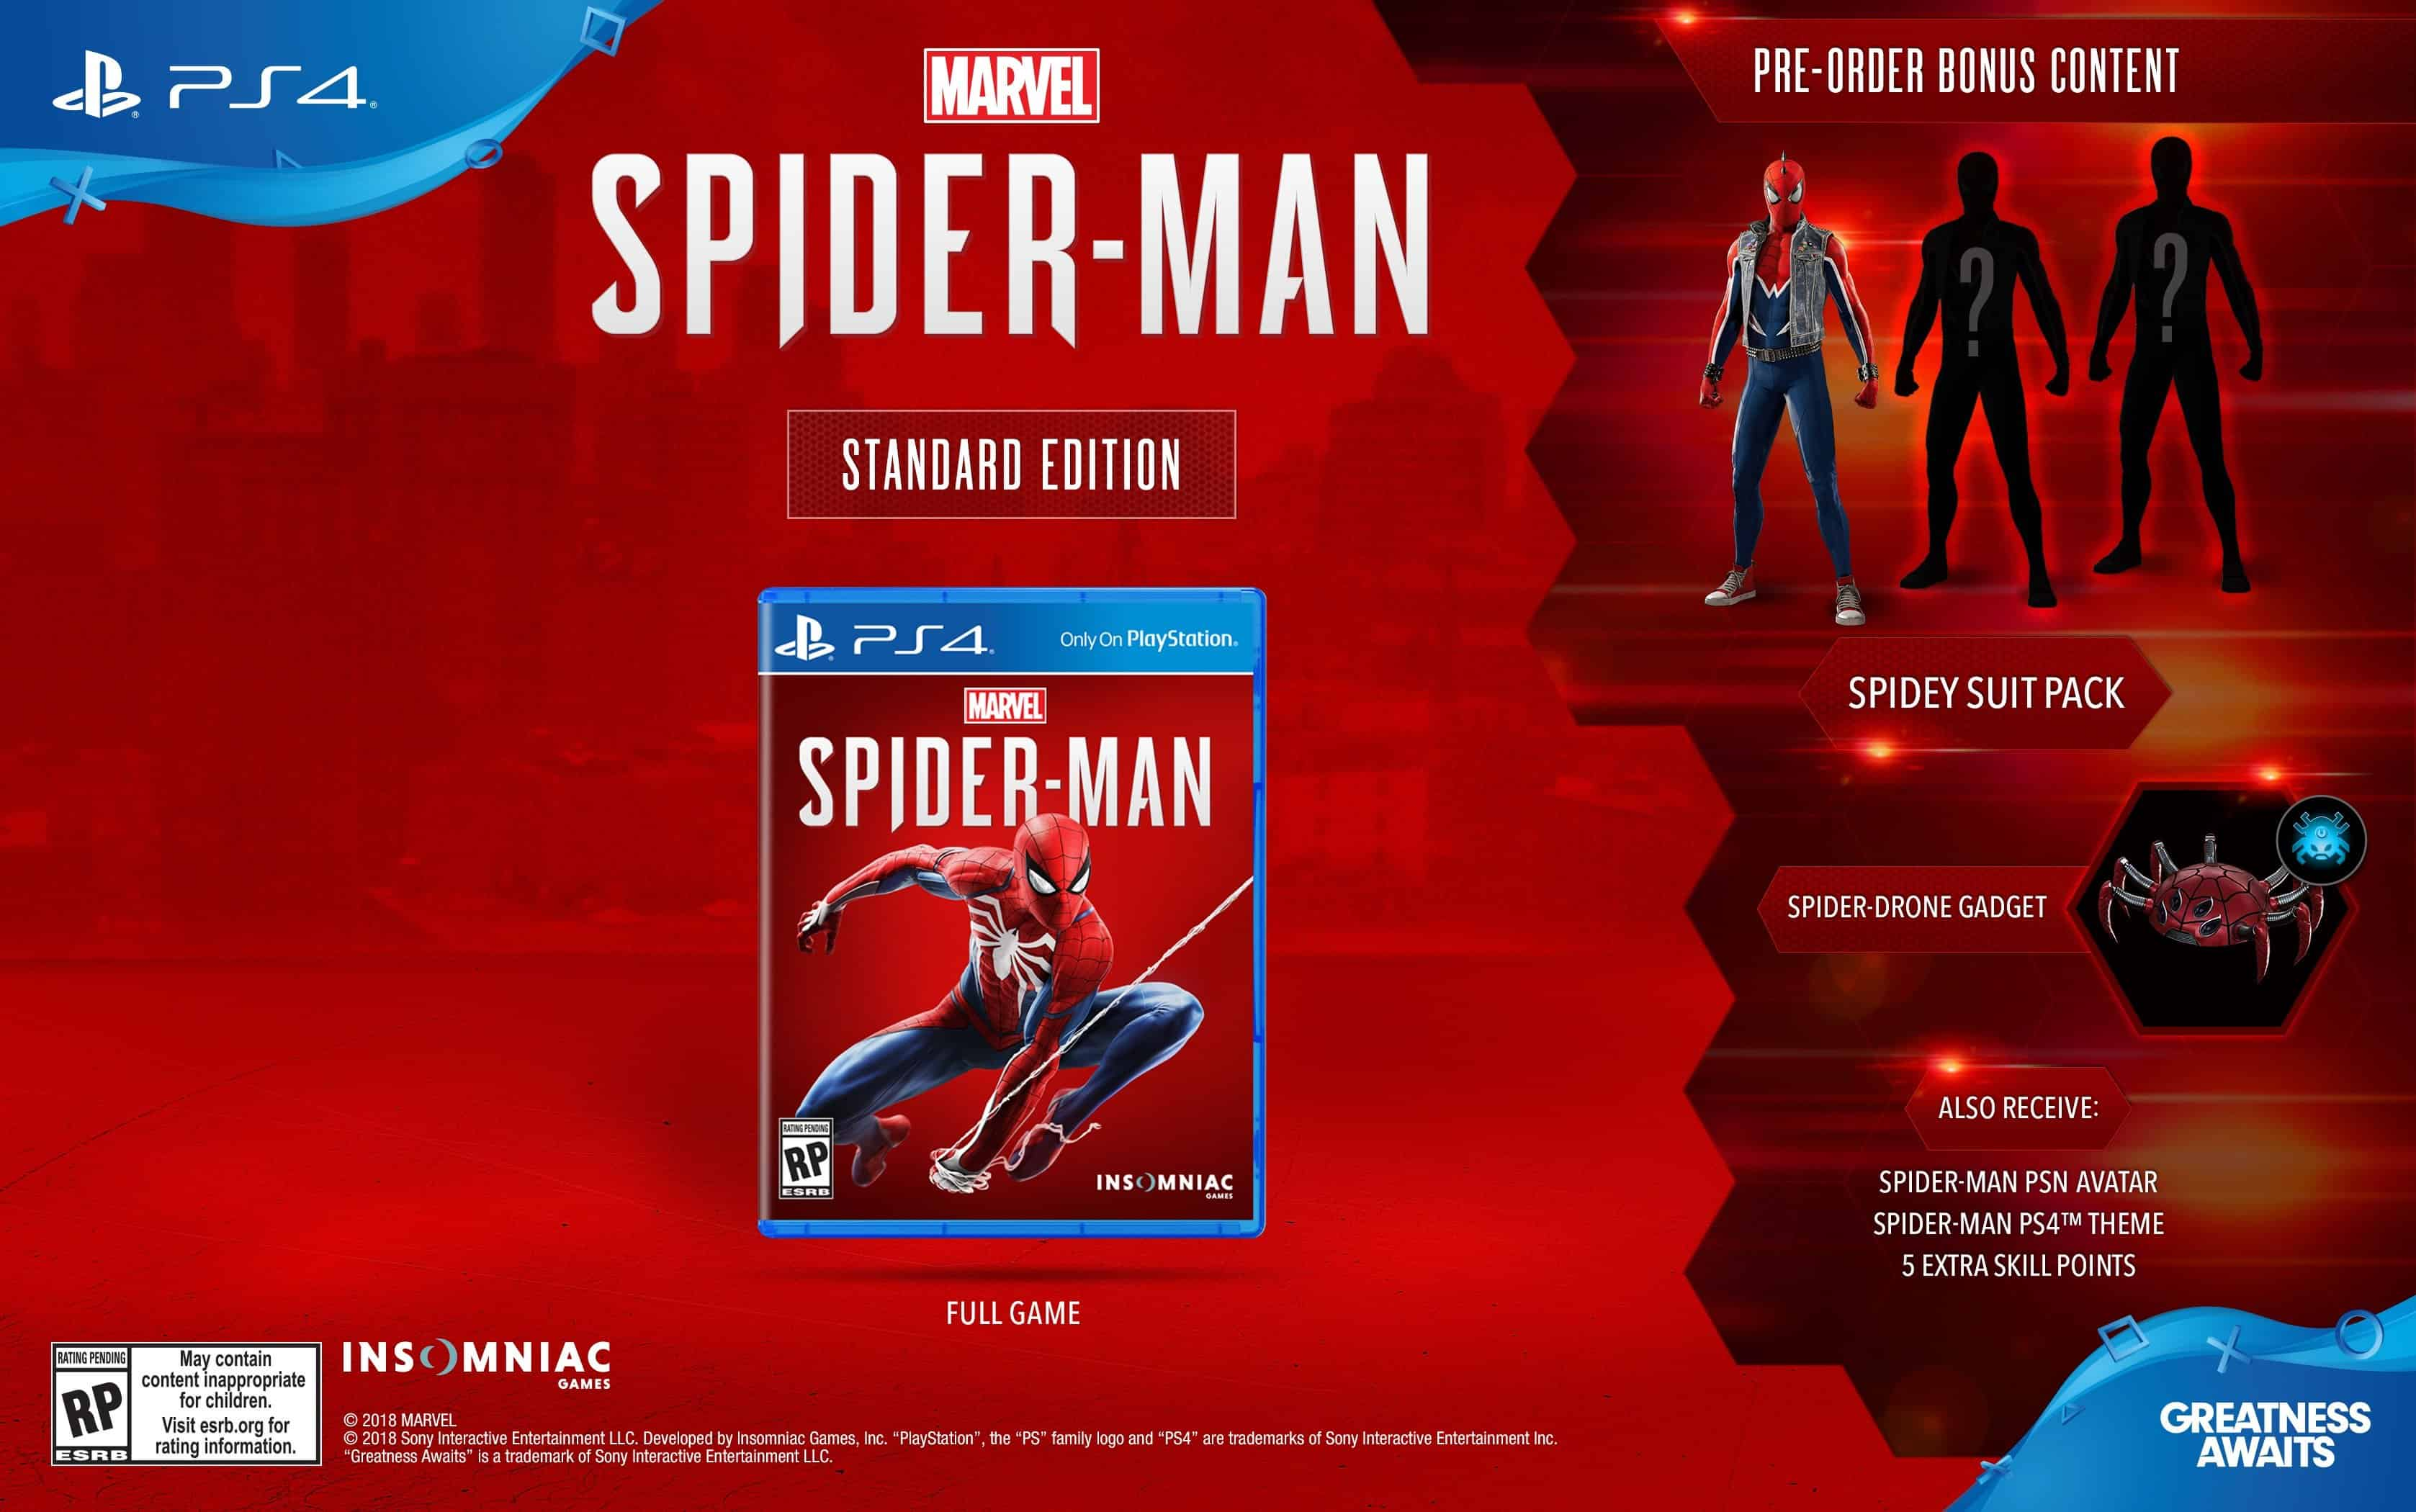 Marvels Spider Man Editions Detailed Which One Is Best For You Tekken 7 Collector Edition Ps4 When It Comes To The Different Standard As Might Expect Just Base Game And Nothing Else